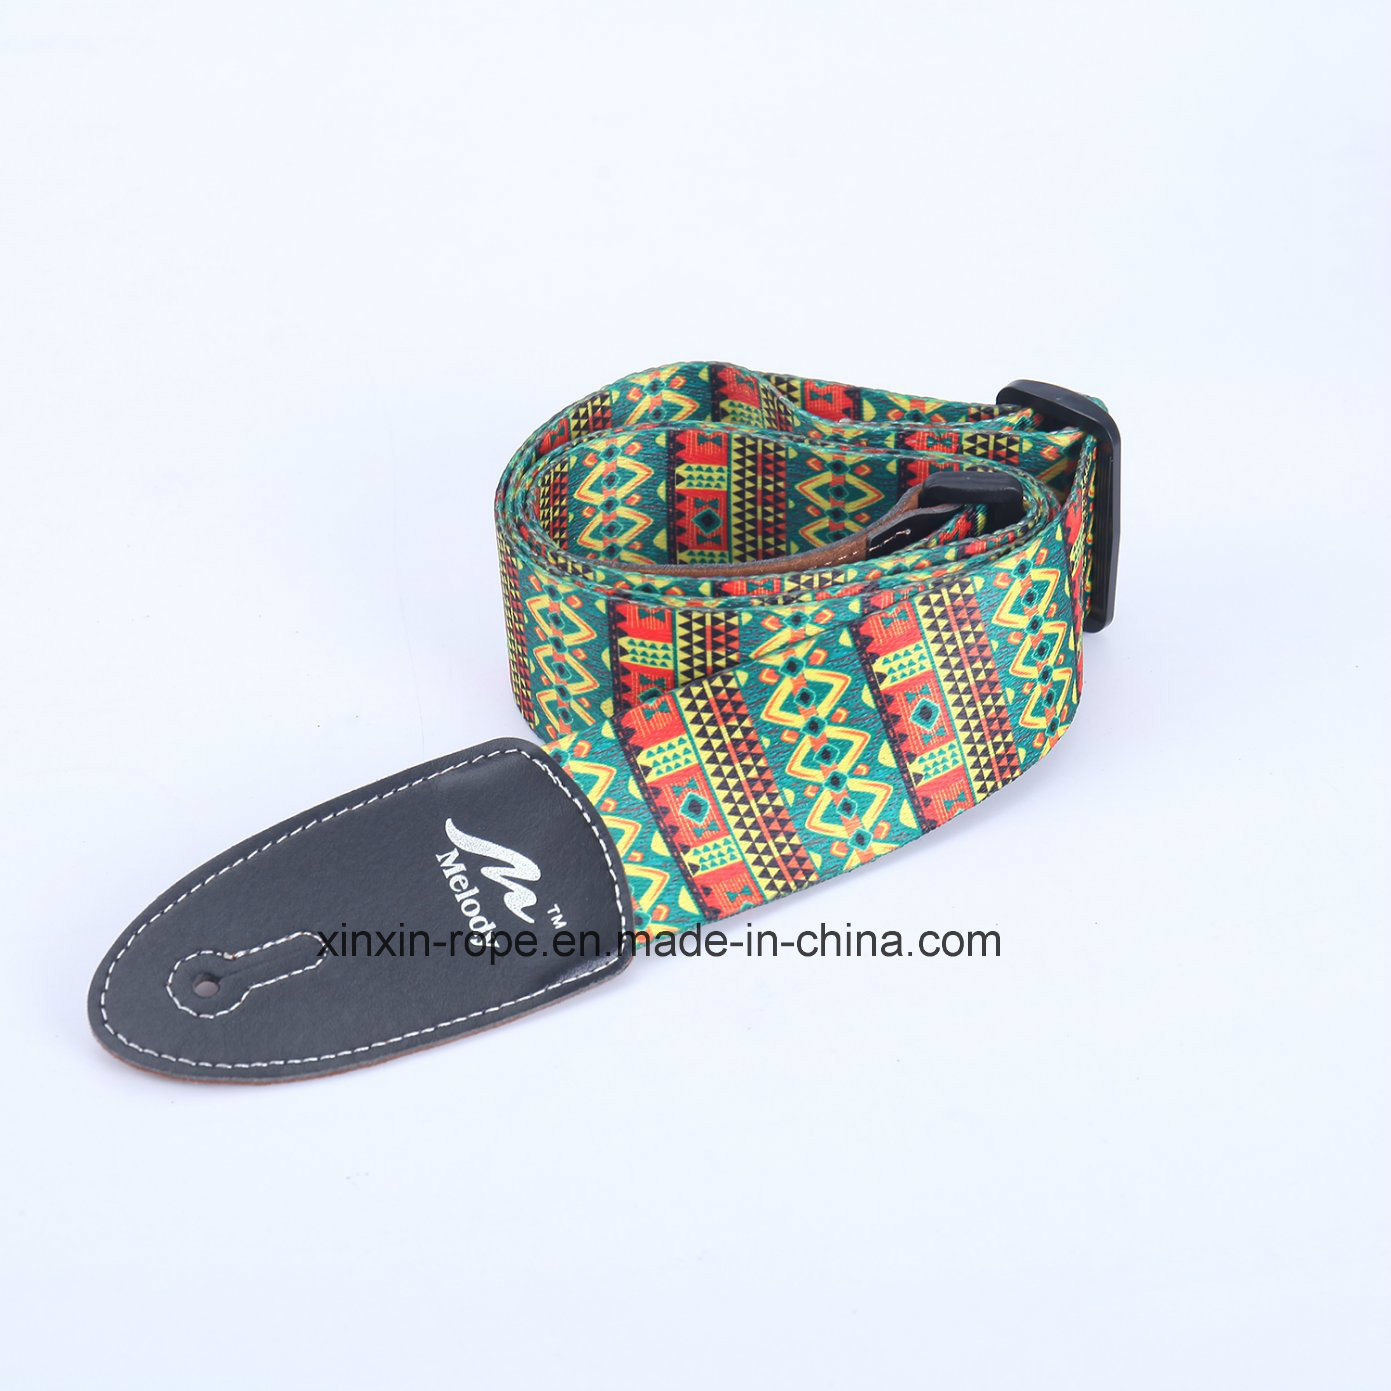 Fashion Jacquard PU Leather Webbing Belt for Guitar